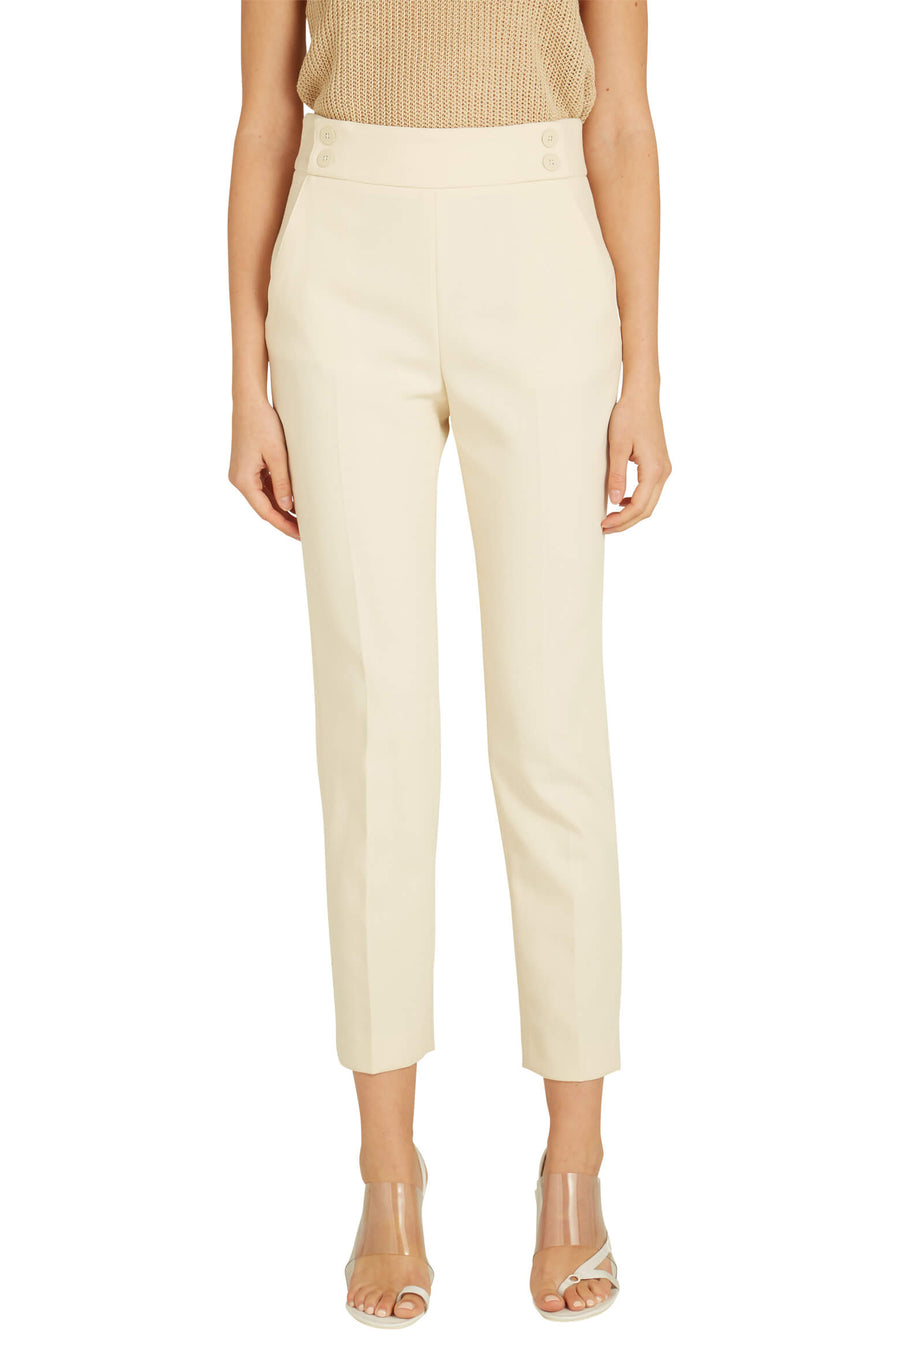 Veronica Beard's Colvin Pants in Ivory from The New Trend